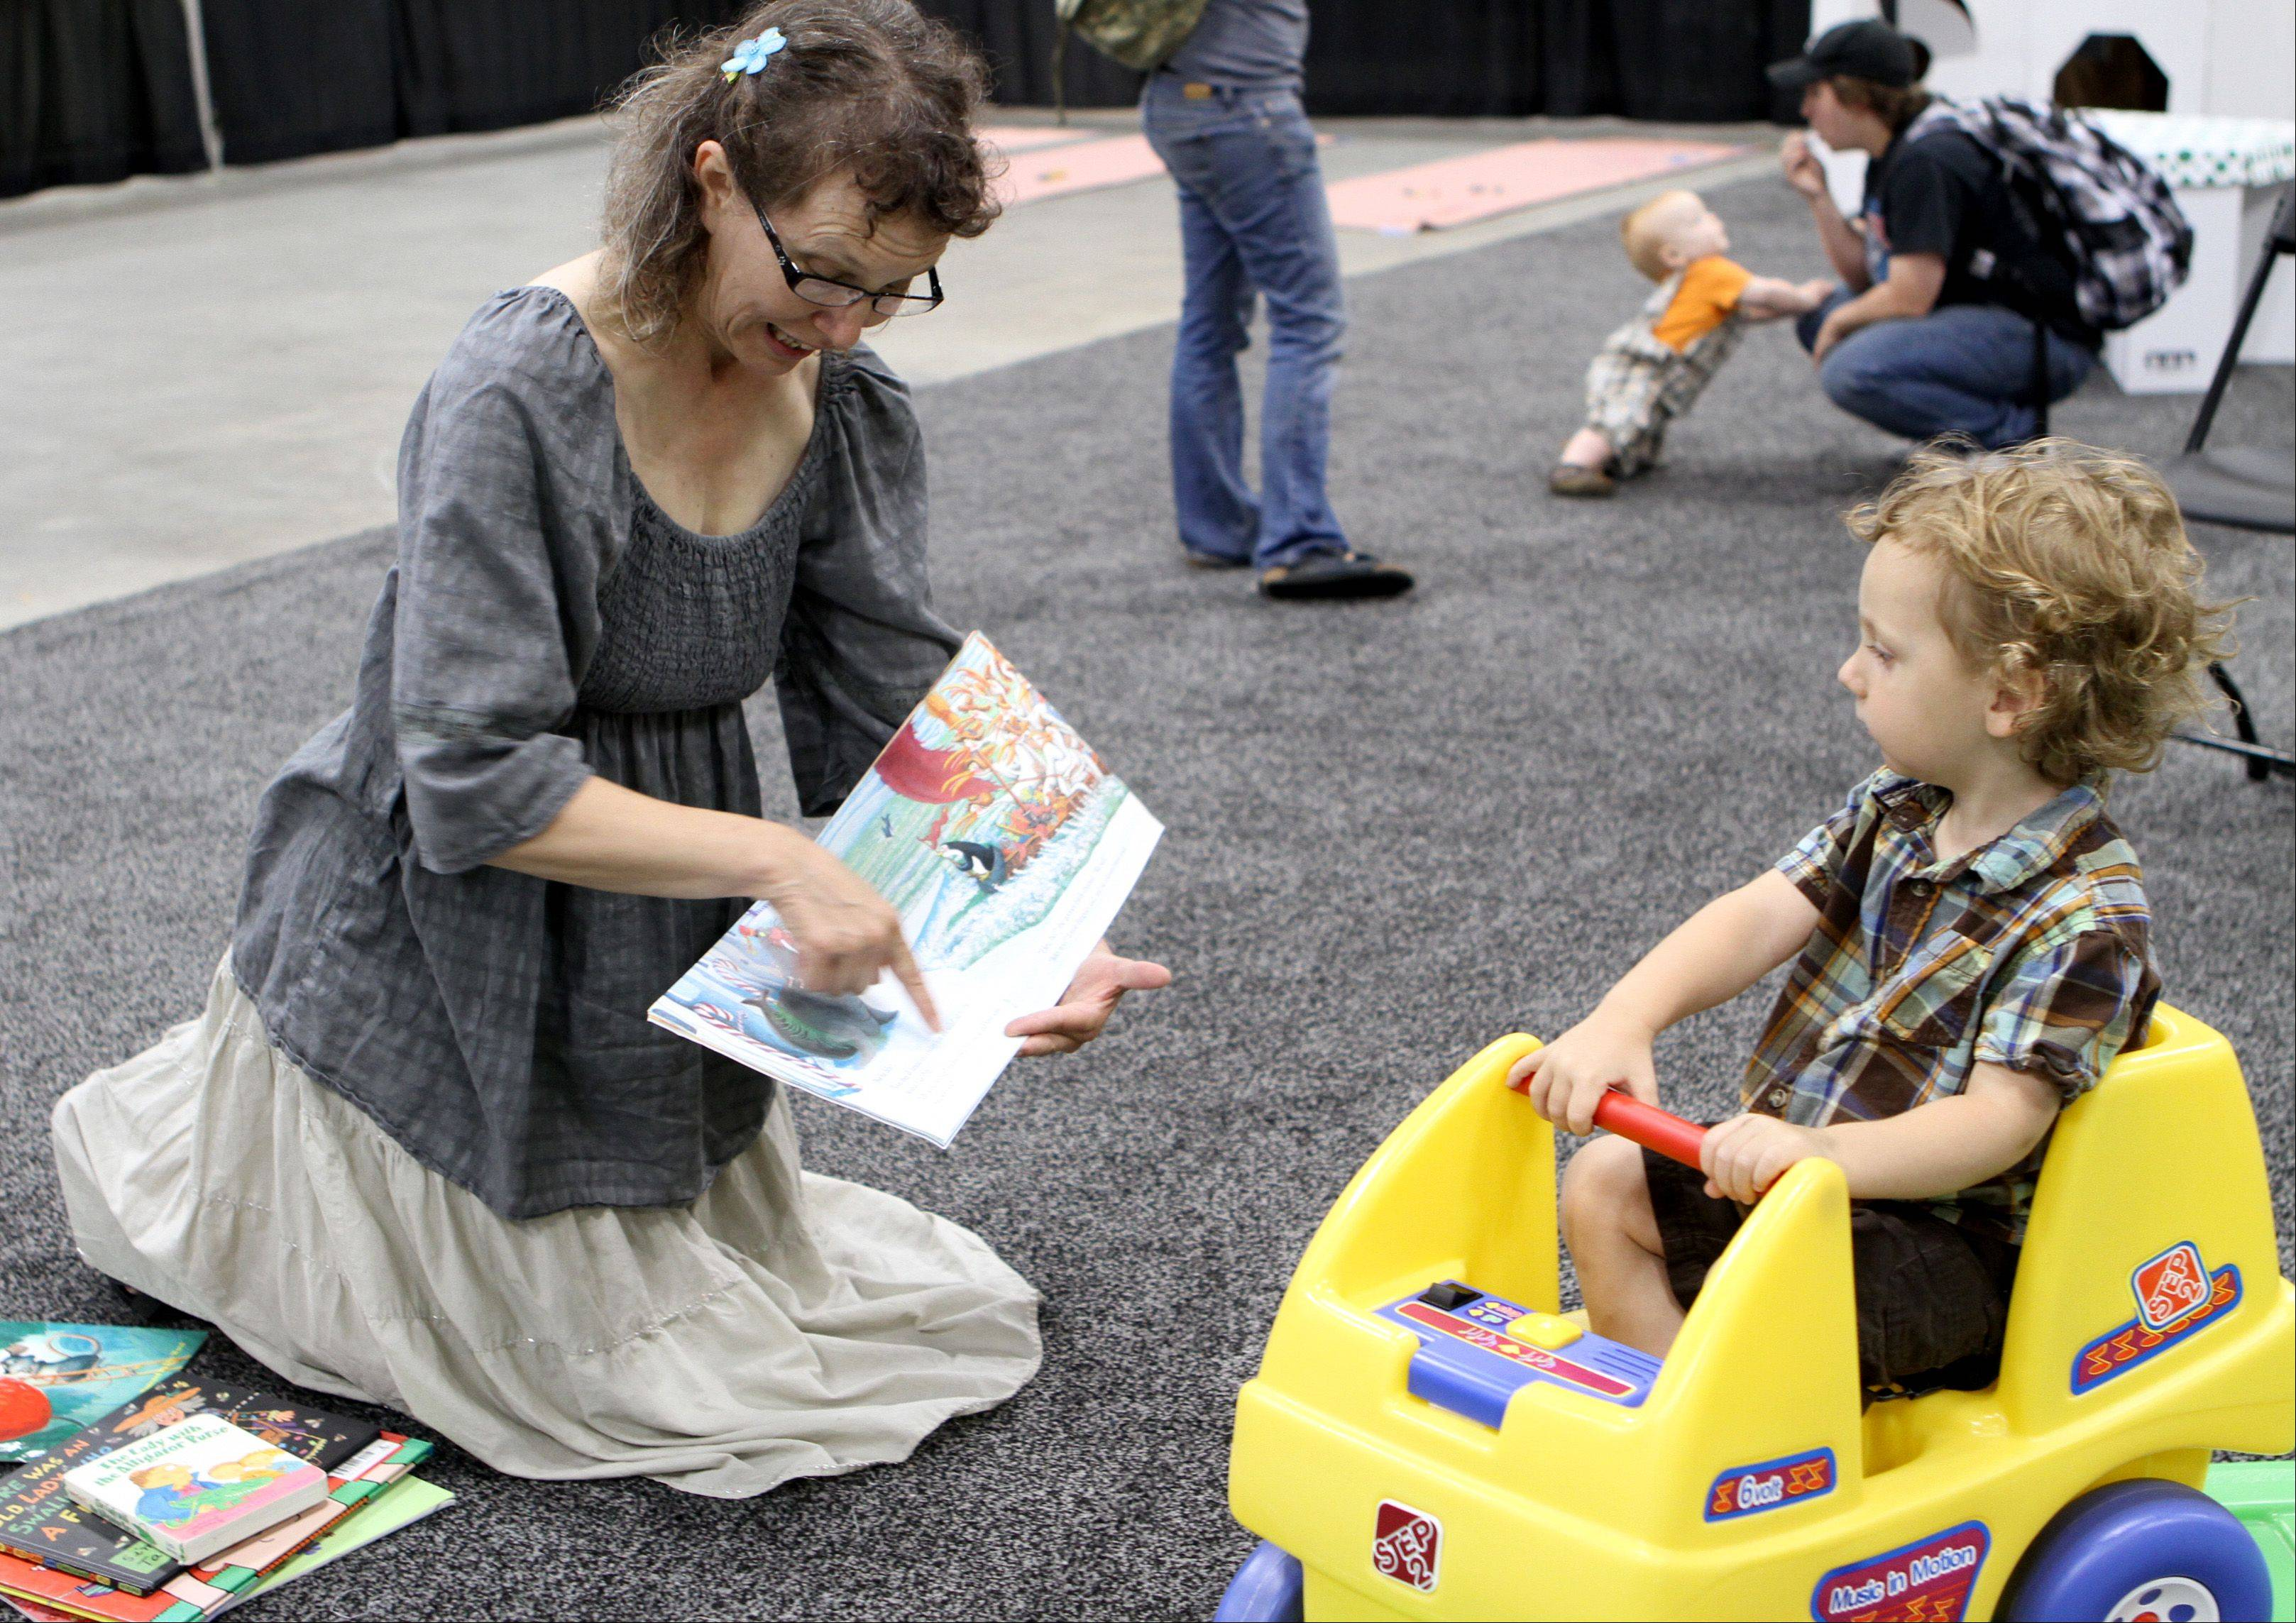 Sharon price of Palatine reads a story to Vincent Polizzi, 2, from West Dundee, during Bebe Paluzza Sunday afternoon at the Schaumburg Convention Center. Vendors showcased products for soon-to-be parents and current parents of babies and toddlers.